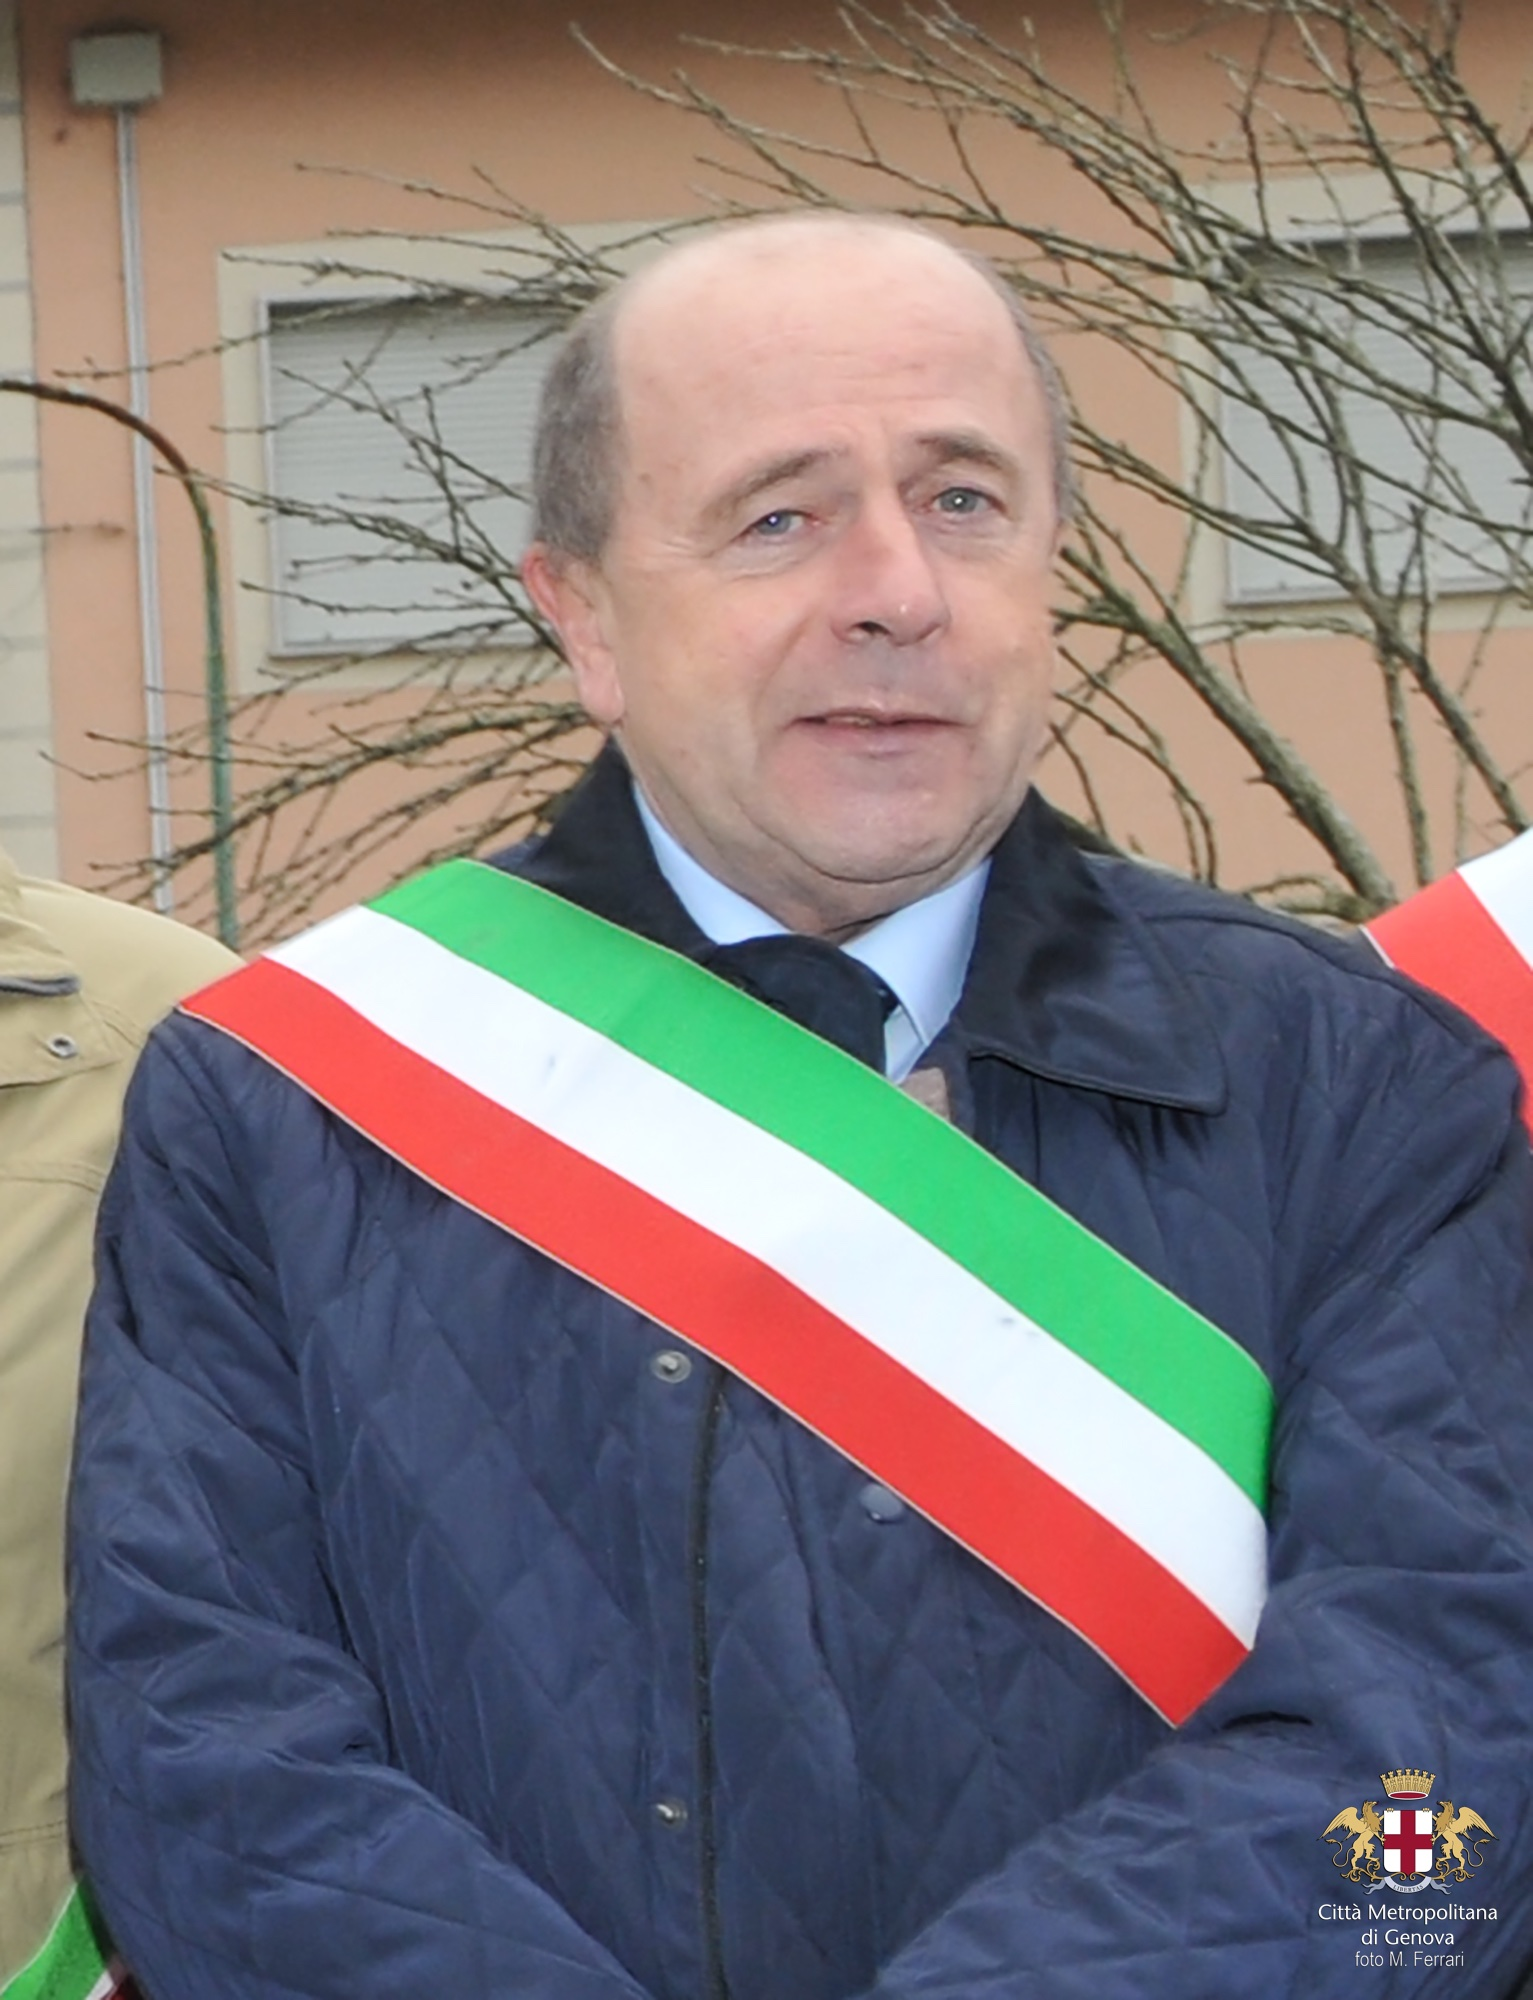 Stefano Sudermania